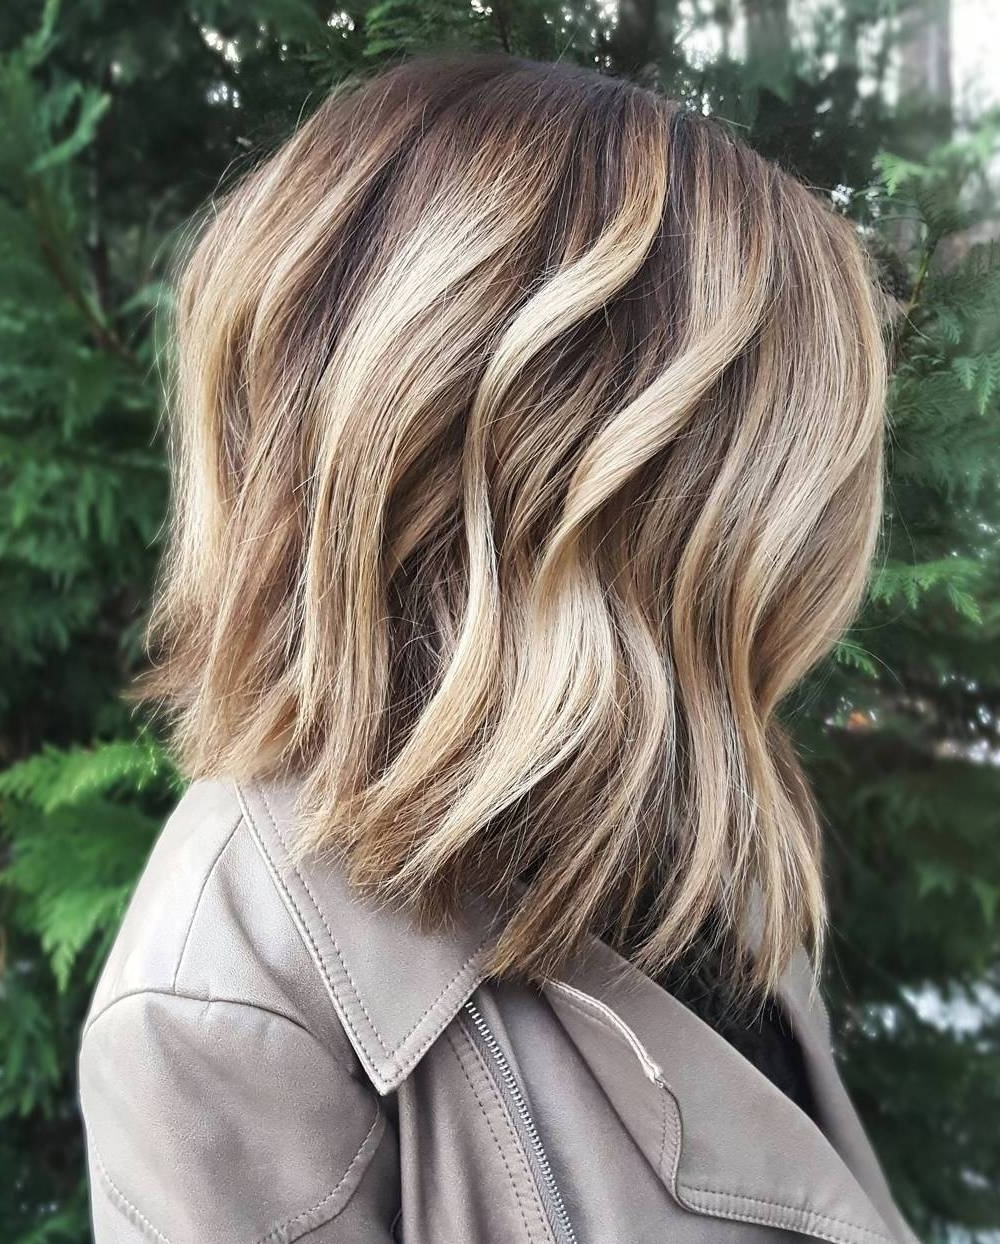 Preferred Dirty Blonde Bob Hairstyles Regarding 20 Dirty Blonde Hair Ideas That Work On Everyone (View 16 of 20)